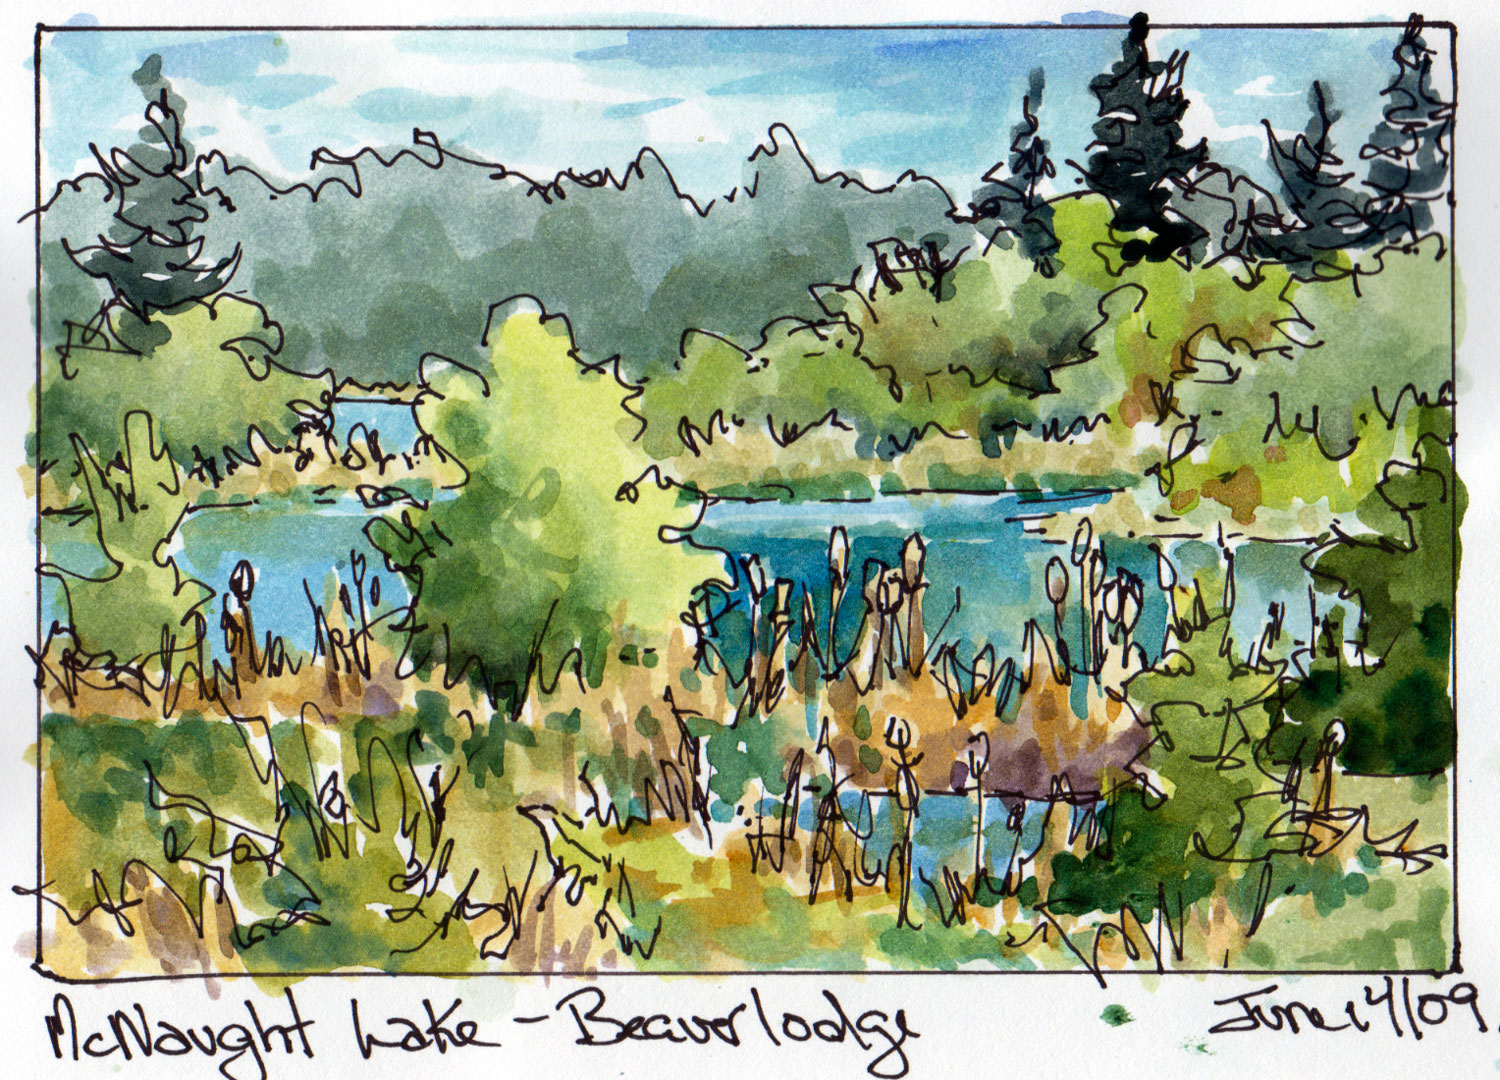 McNaught-Lake---Beaverlodge.jpg